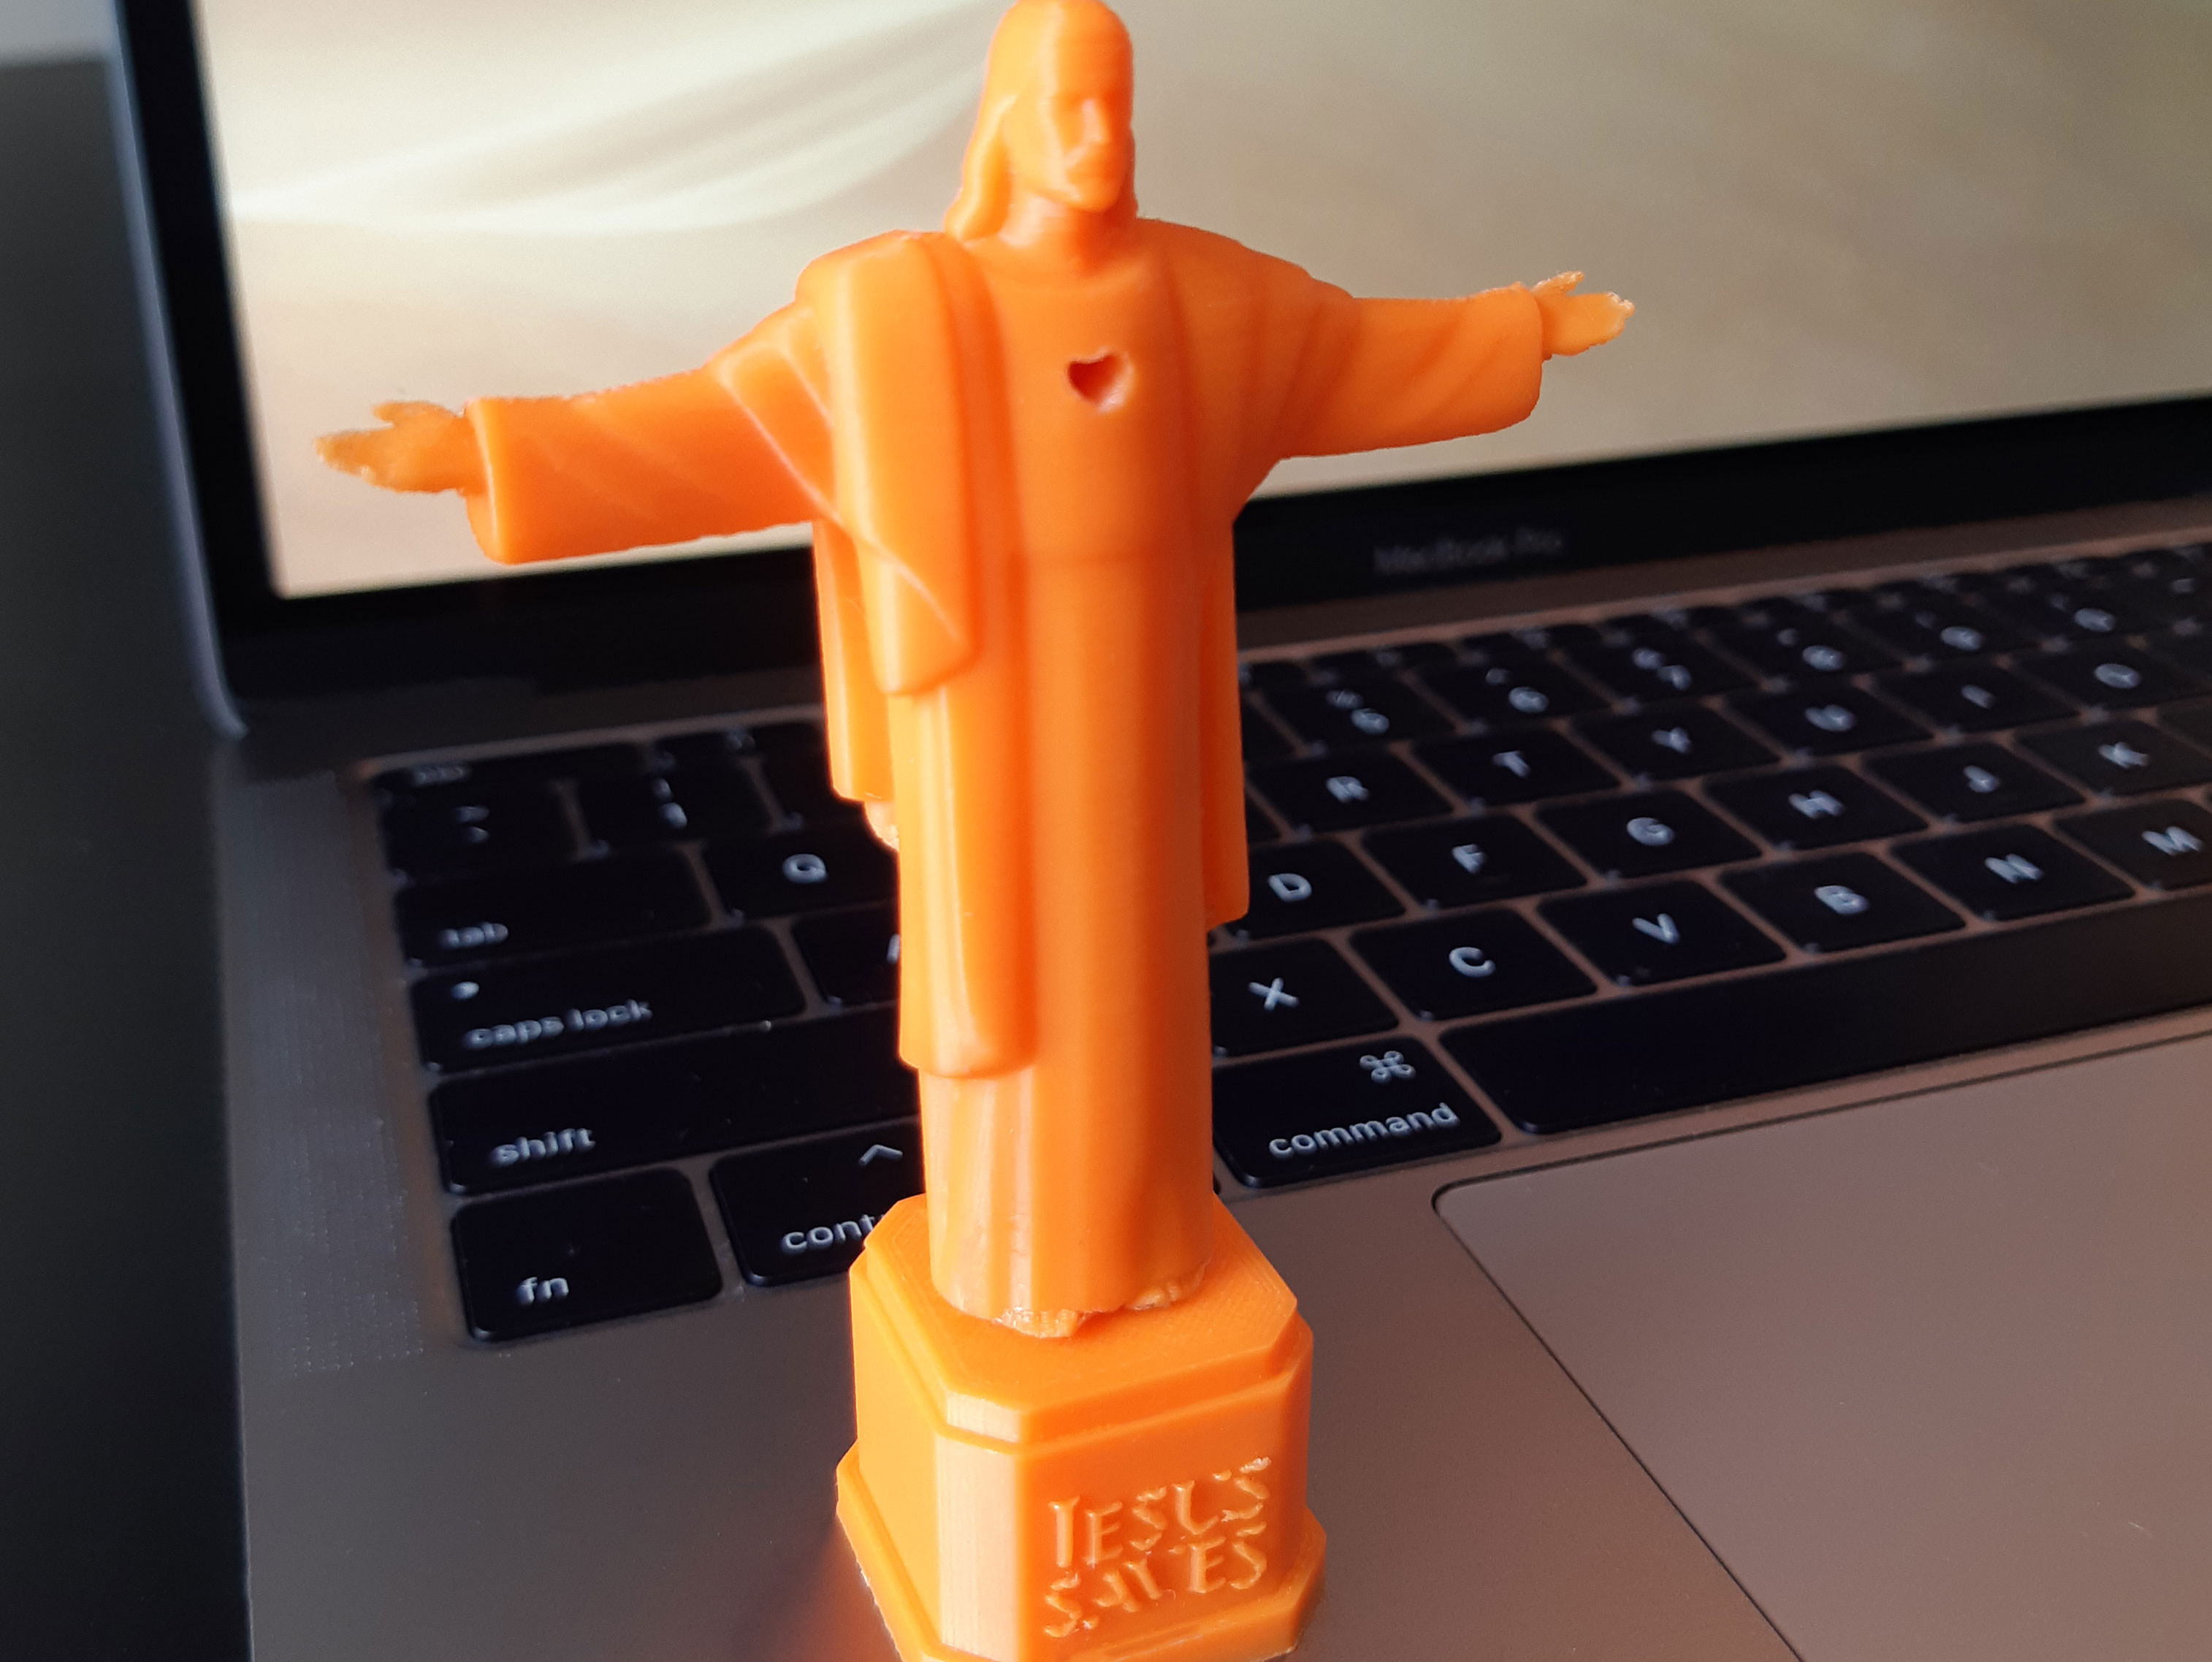 Jesus Usb Stick